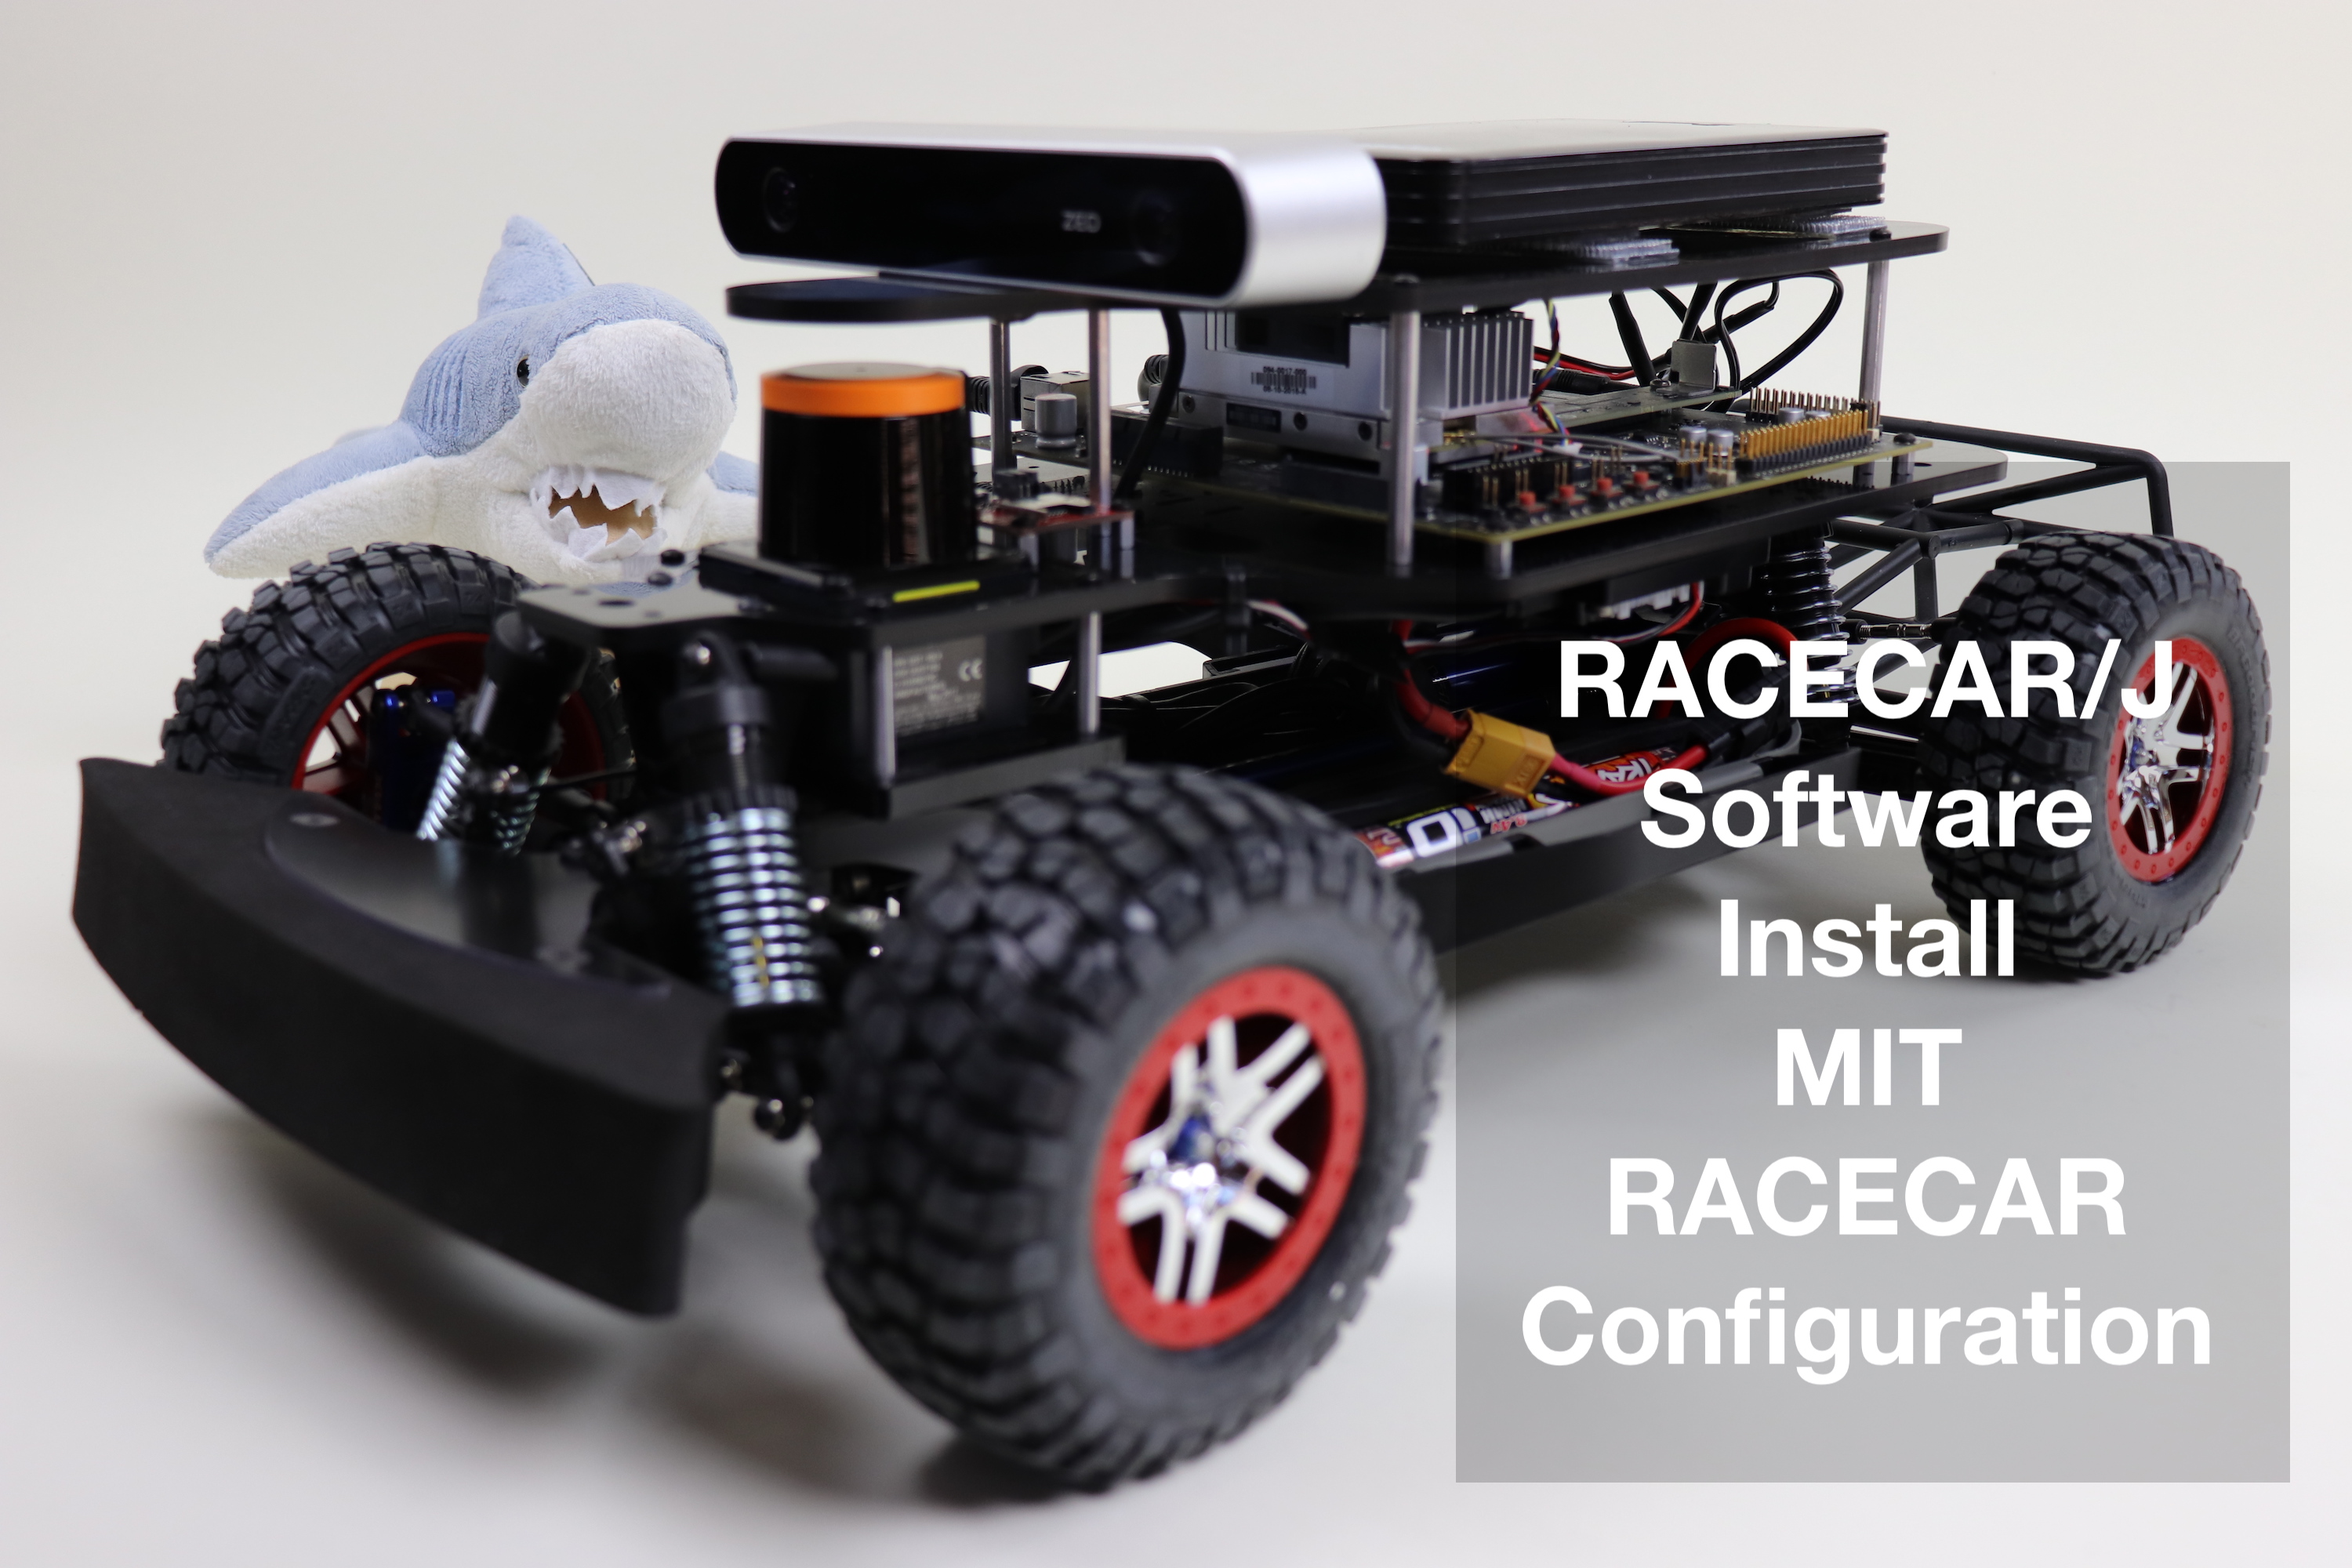 RACECAR/J Software Install - JetsonHacks